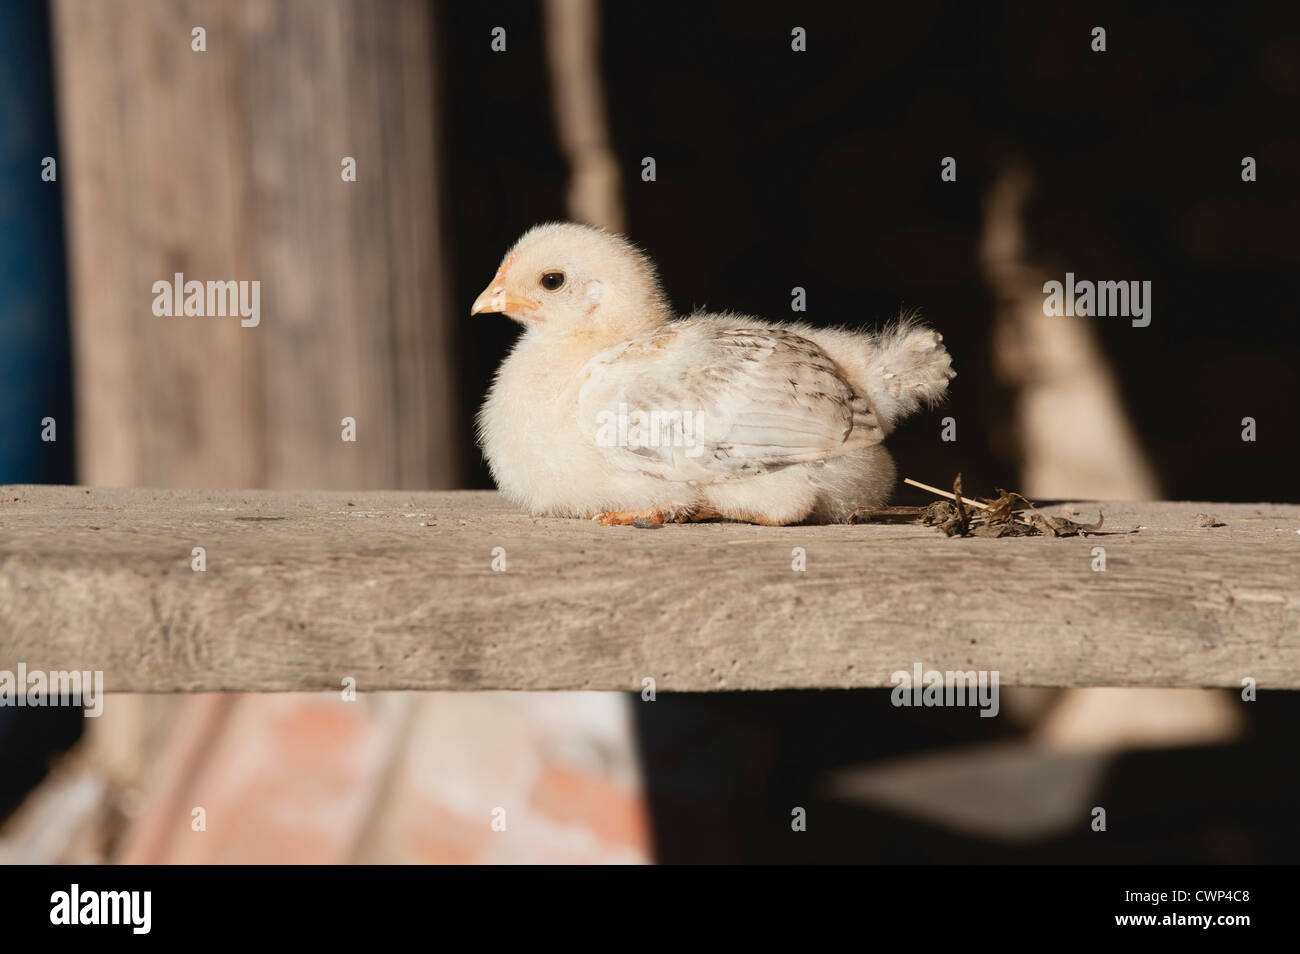 Baby chick resting on wooden beam - Stock Image